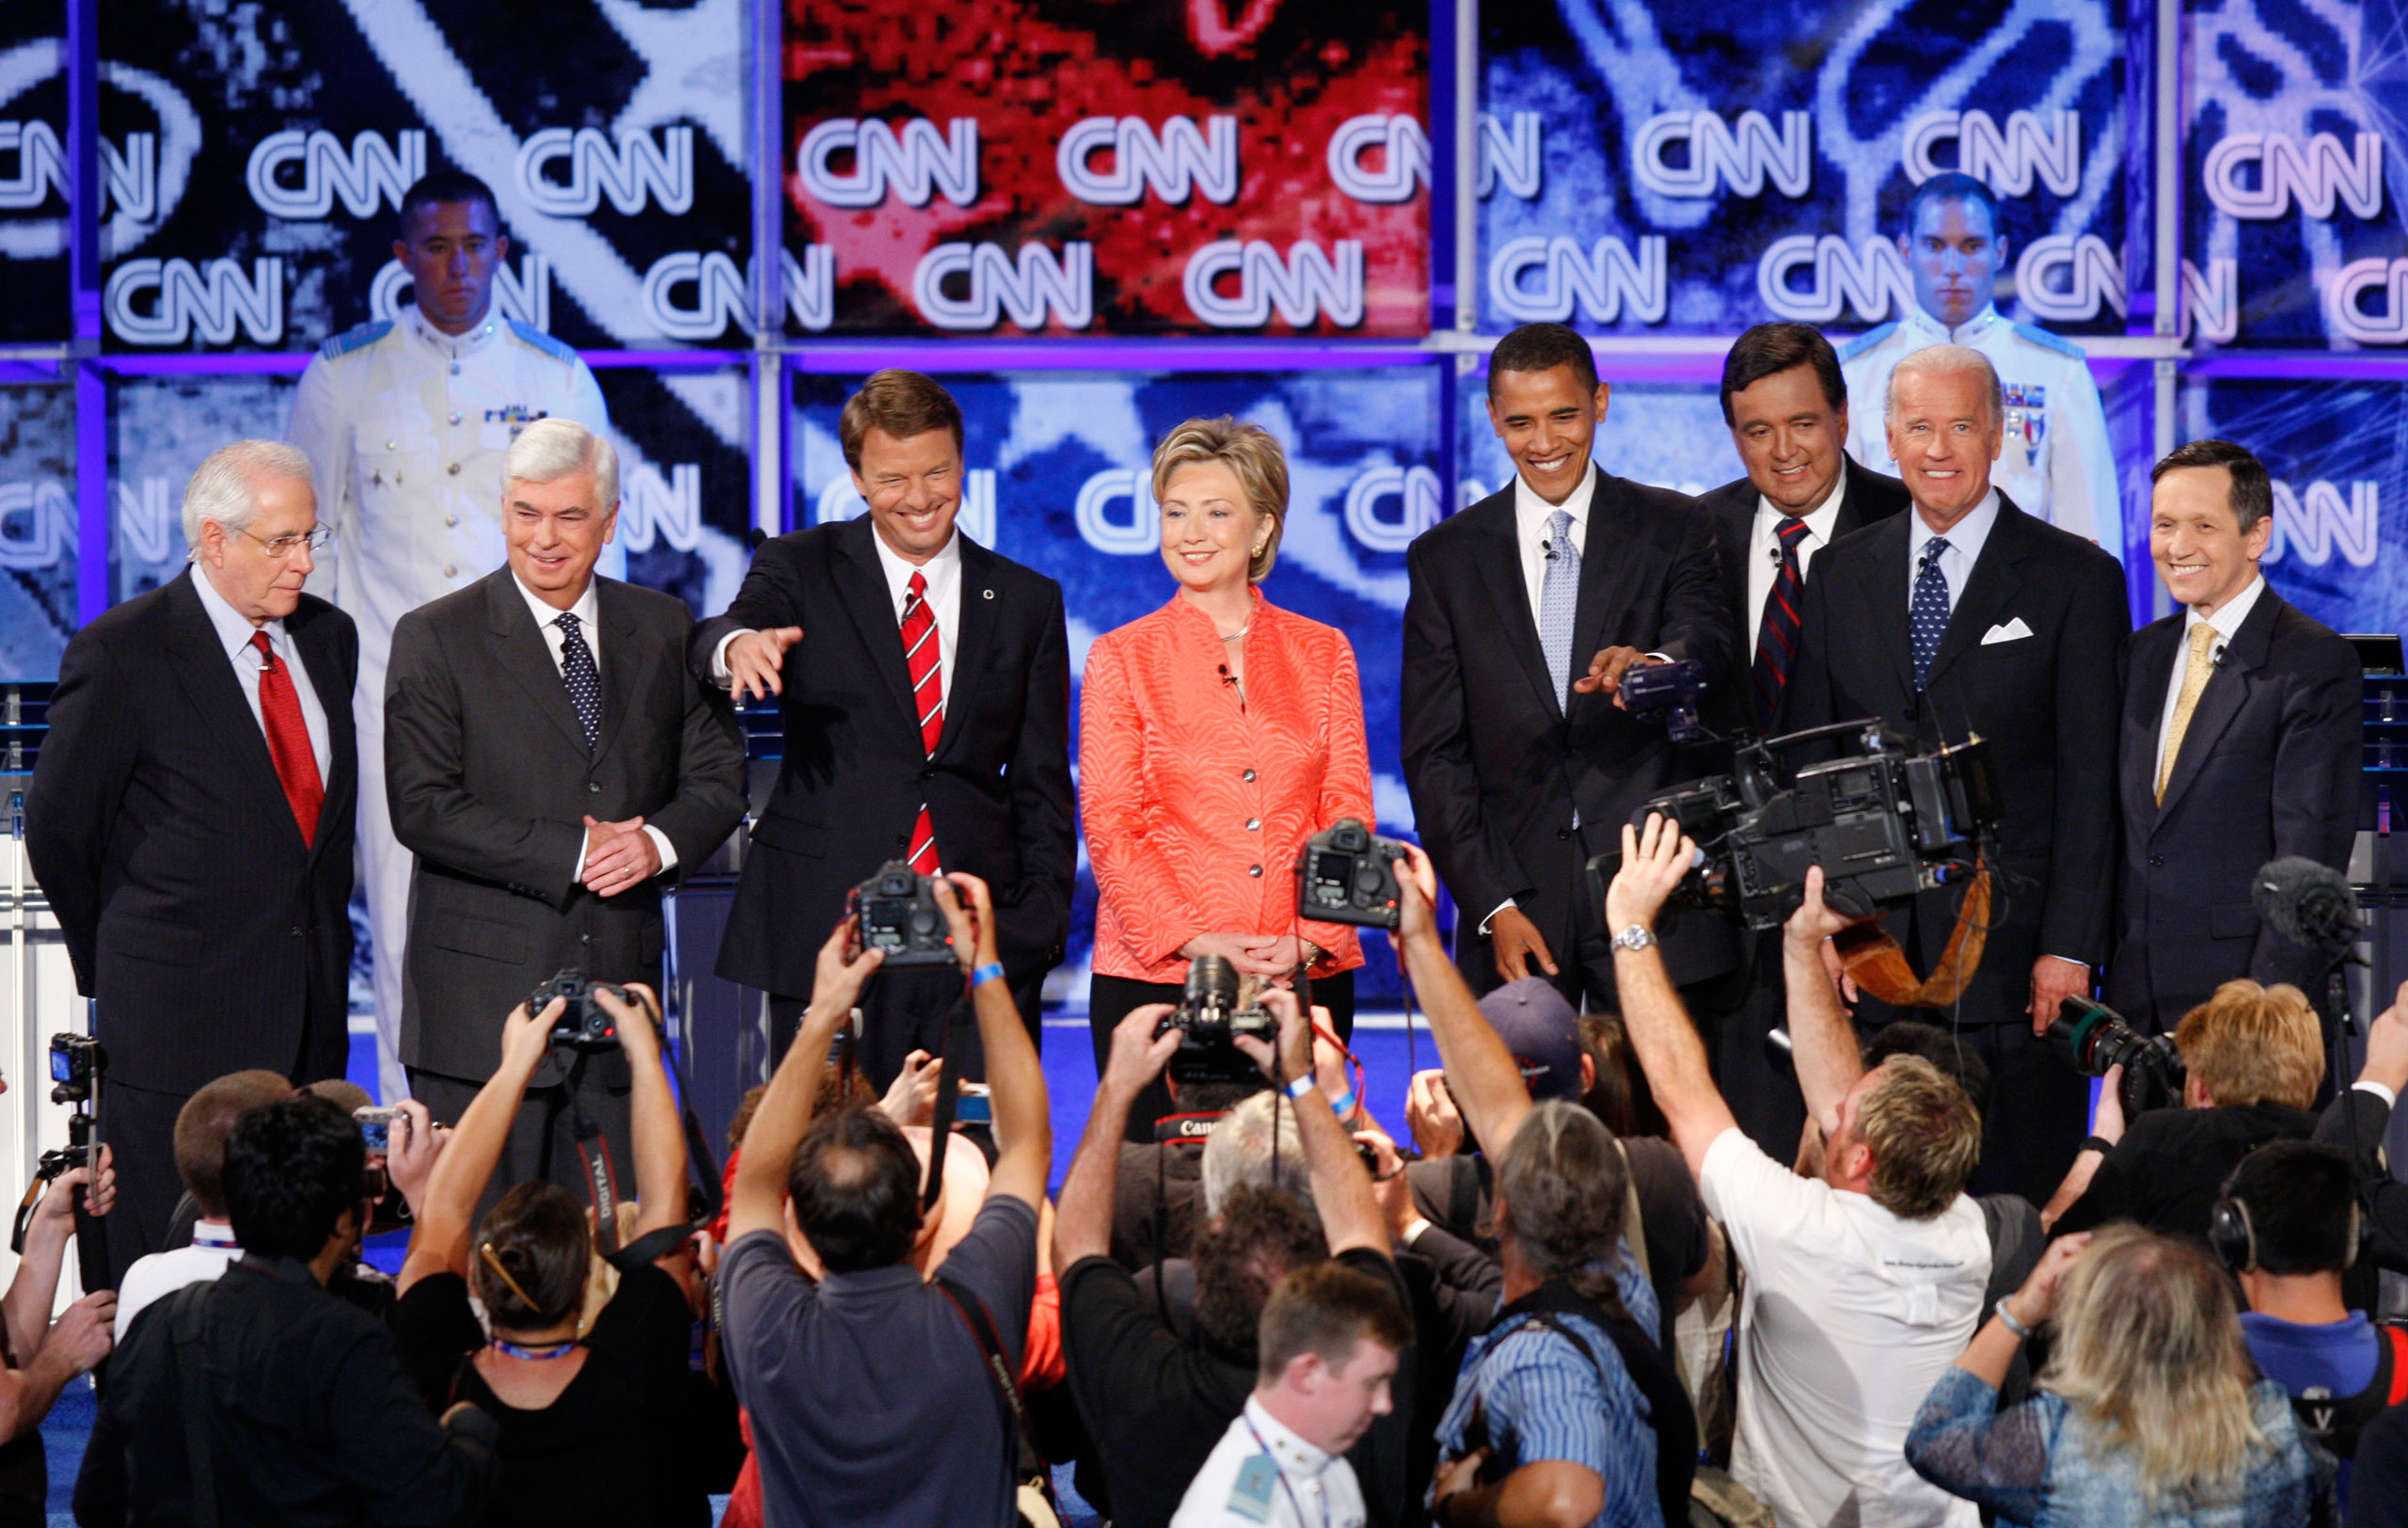 Democratic presidential hopefuls, from left: former Senator Mike Gravel, Senator Christopher Dodd,  former Senator John Edwards, Senator Hillary Rodham Clinton, Senator Barack Obama, New Mexico Governor Bill Richardson, Senator Joe Biden, and Representative Dennis Kucinich stand together before the start of the debate sponsored by CNN, YouTube and Google at The Citadel military college in Charleston, S.C., on July 23, 2007.